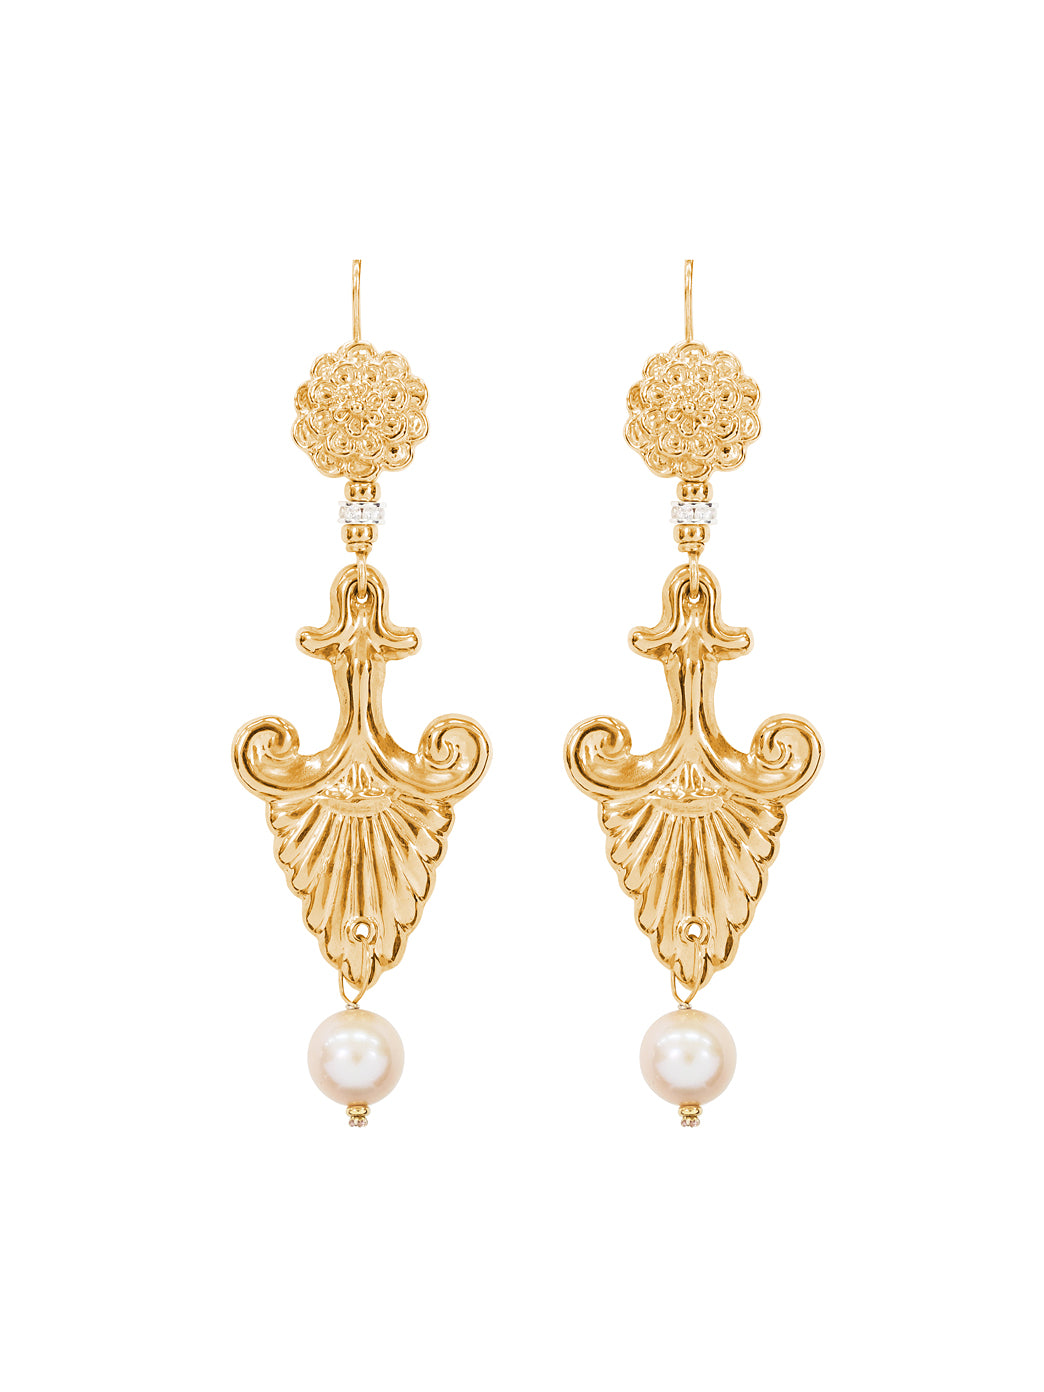 Fiorina Jewellery Gold Noto Earrings